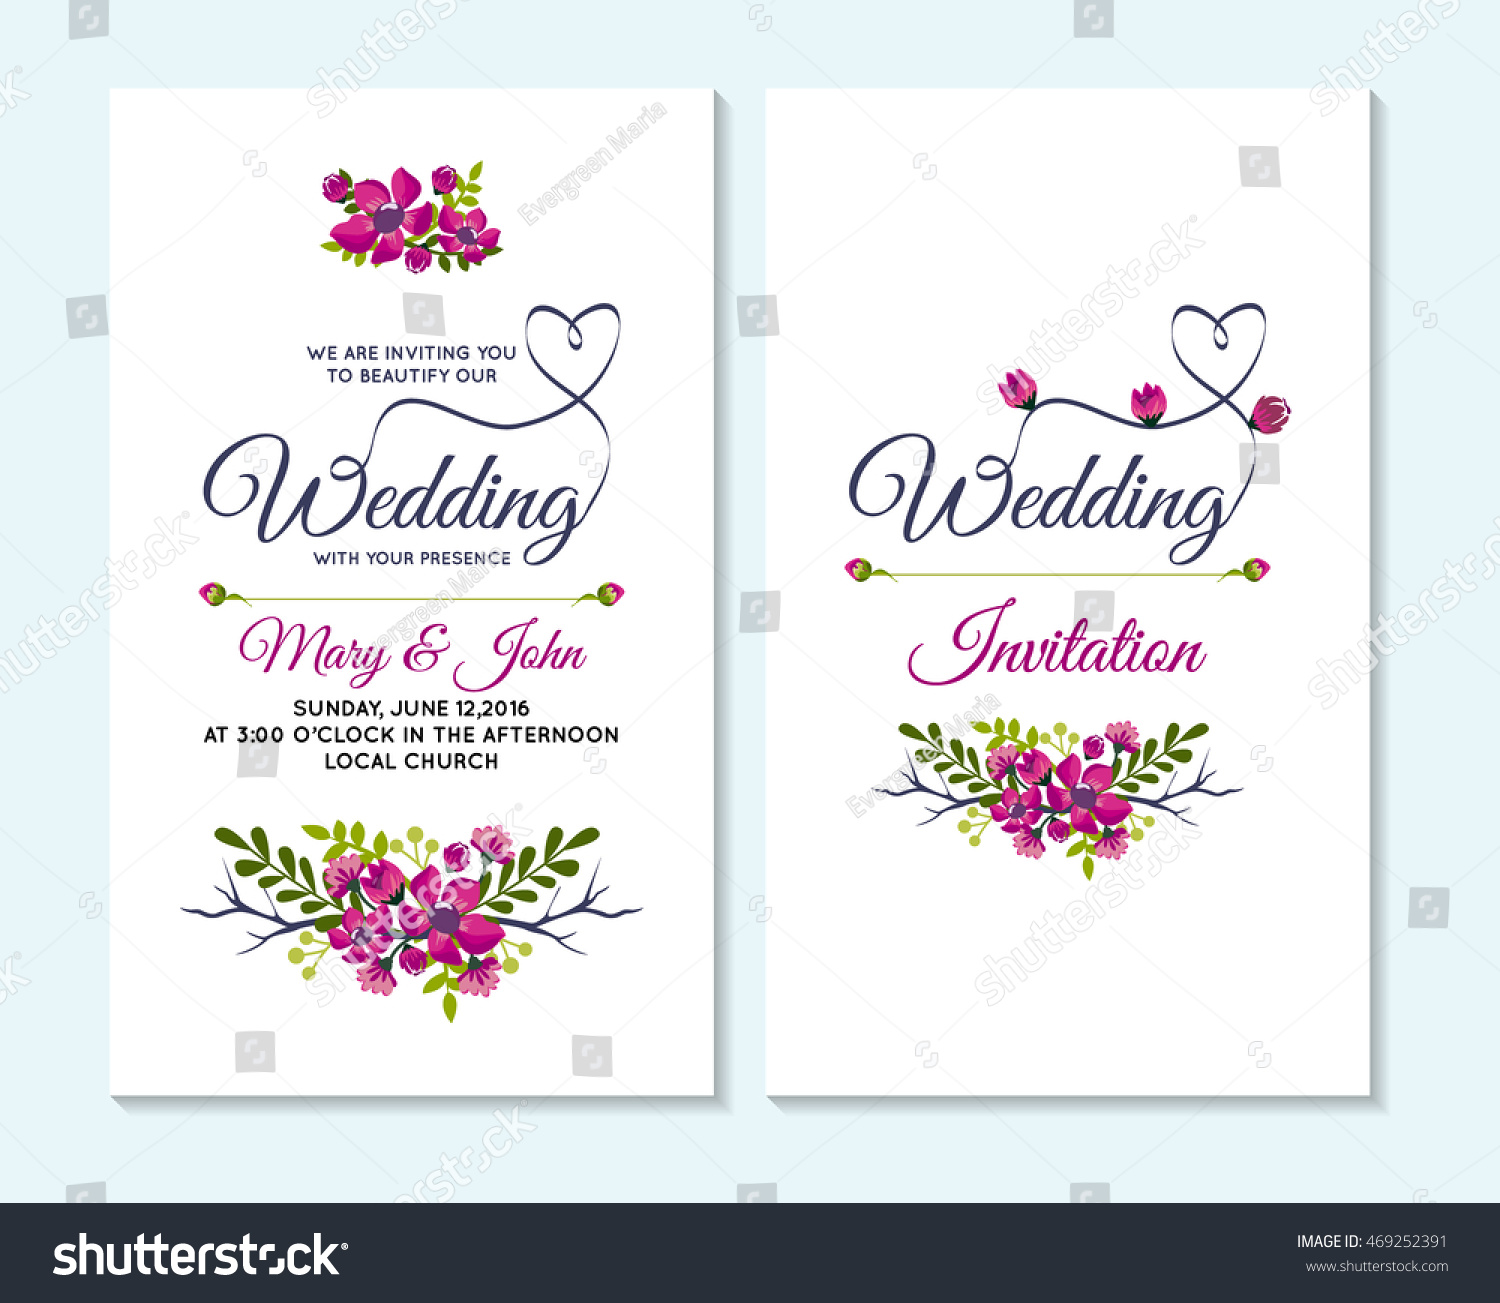 Wedding Invitation Thank You Card Save Stock Vector HD (Royalty Free ...